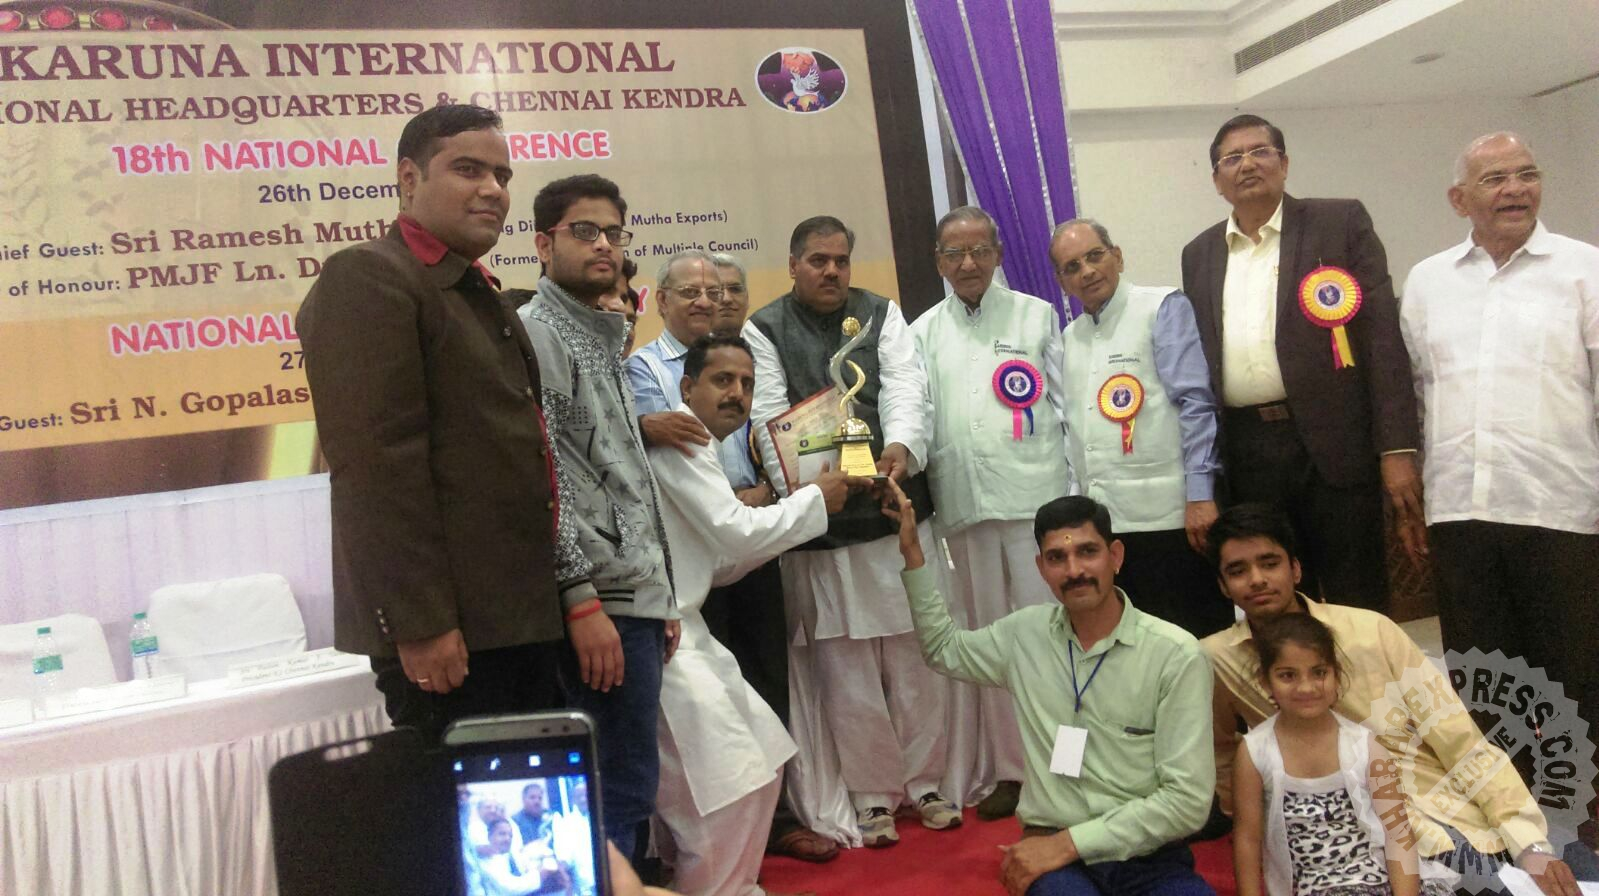 Karuna International Outstanding Club Award to Nalanda Public School